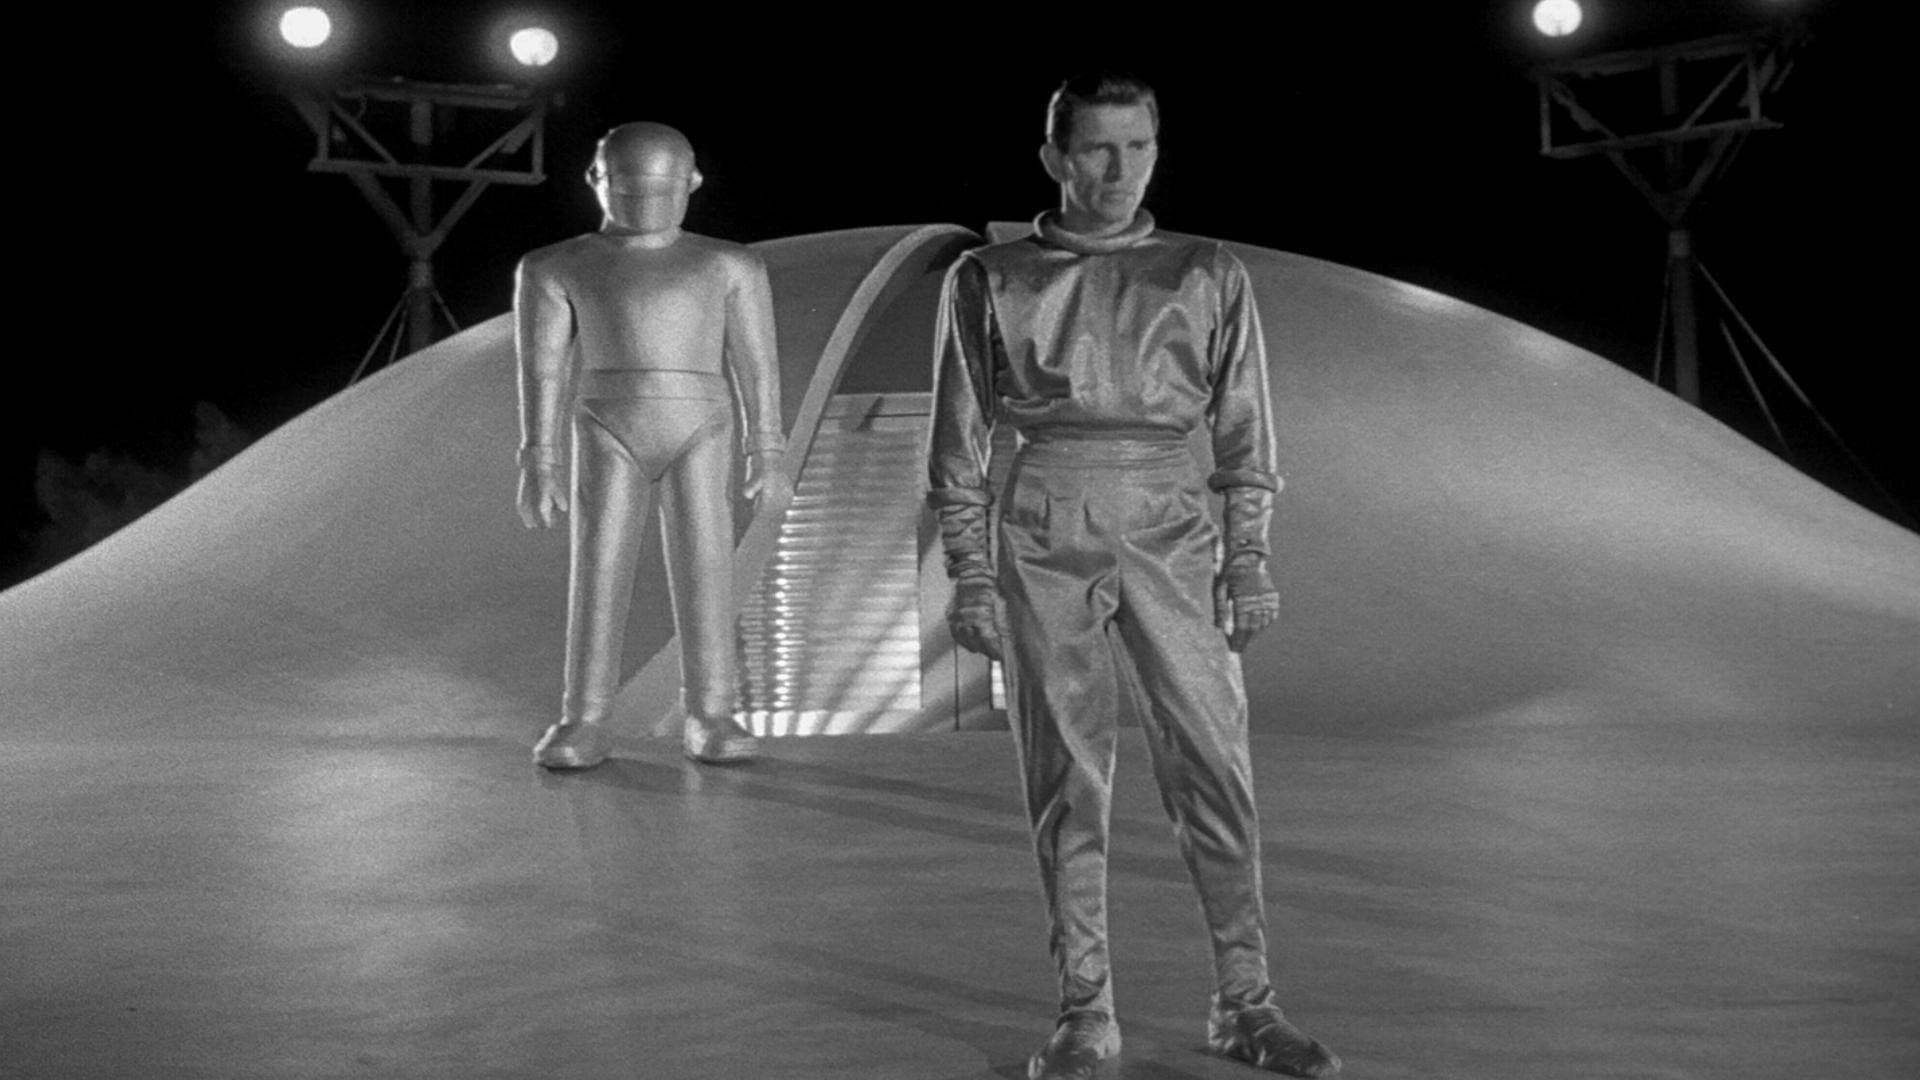 Watch Free The Day the Earth Stood Still 1951 Full Length Movies